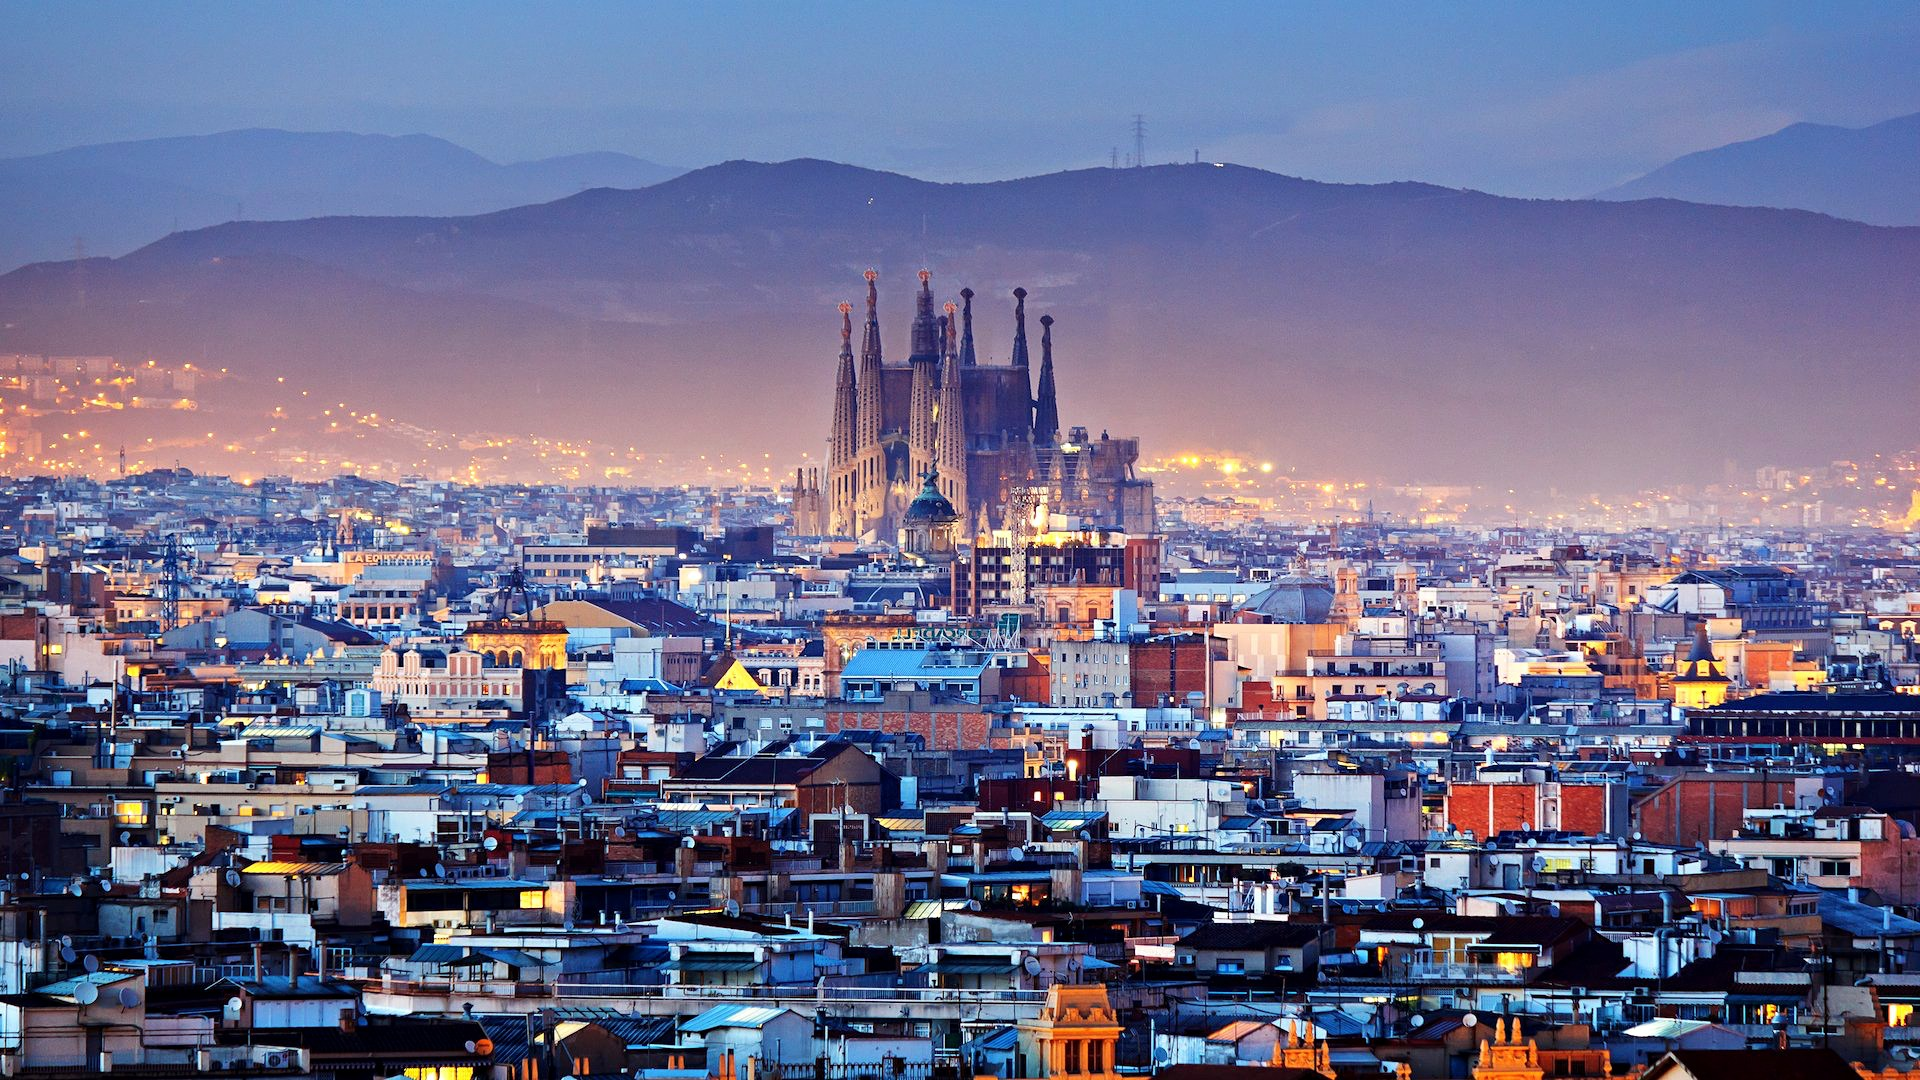 Cali4travel - Full Barcelona & Madrid (8 days)